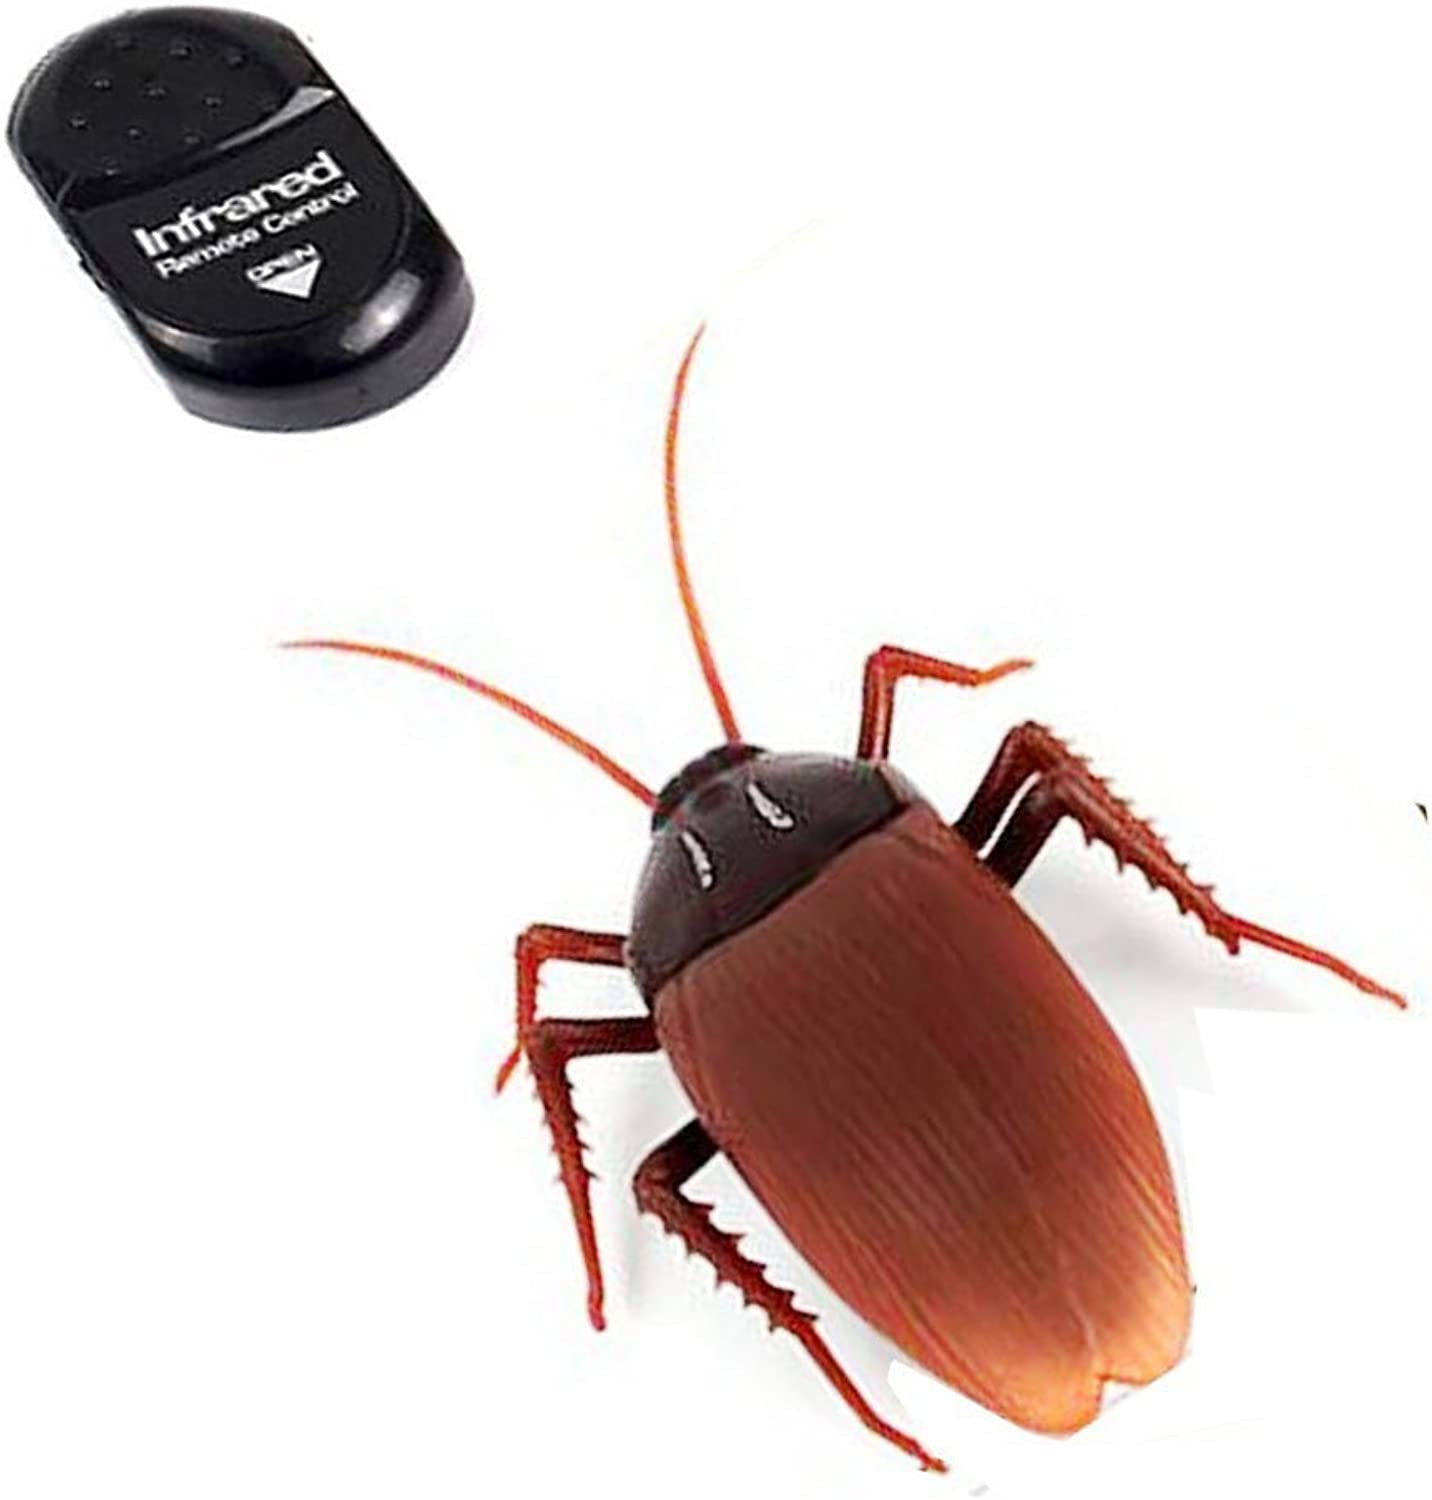 Toy for Kids Gift, ABCmall Novelty Emulational Remote Control Cockroach Animal Toy Funny Toy for Christmas